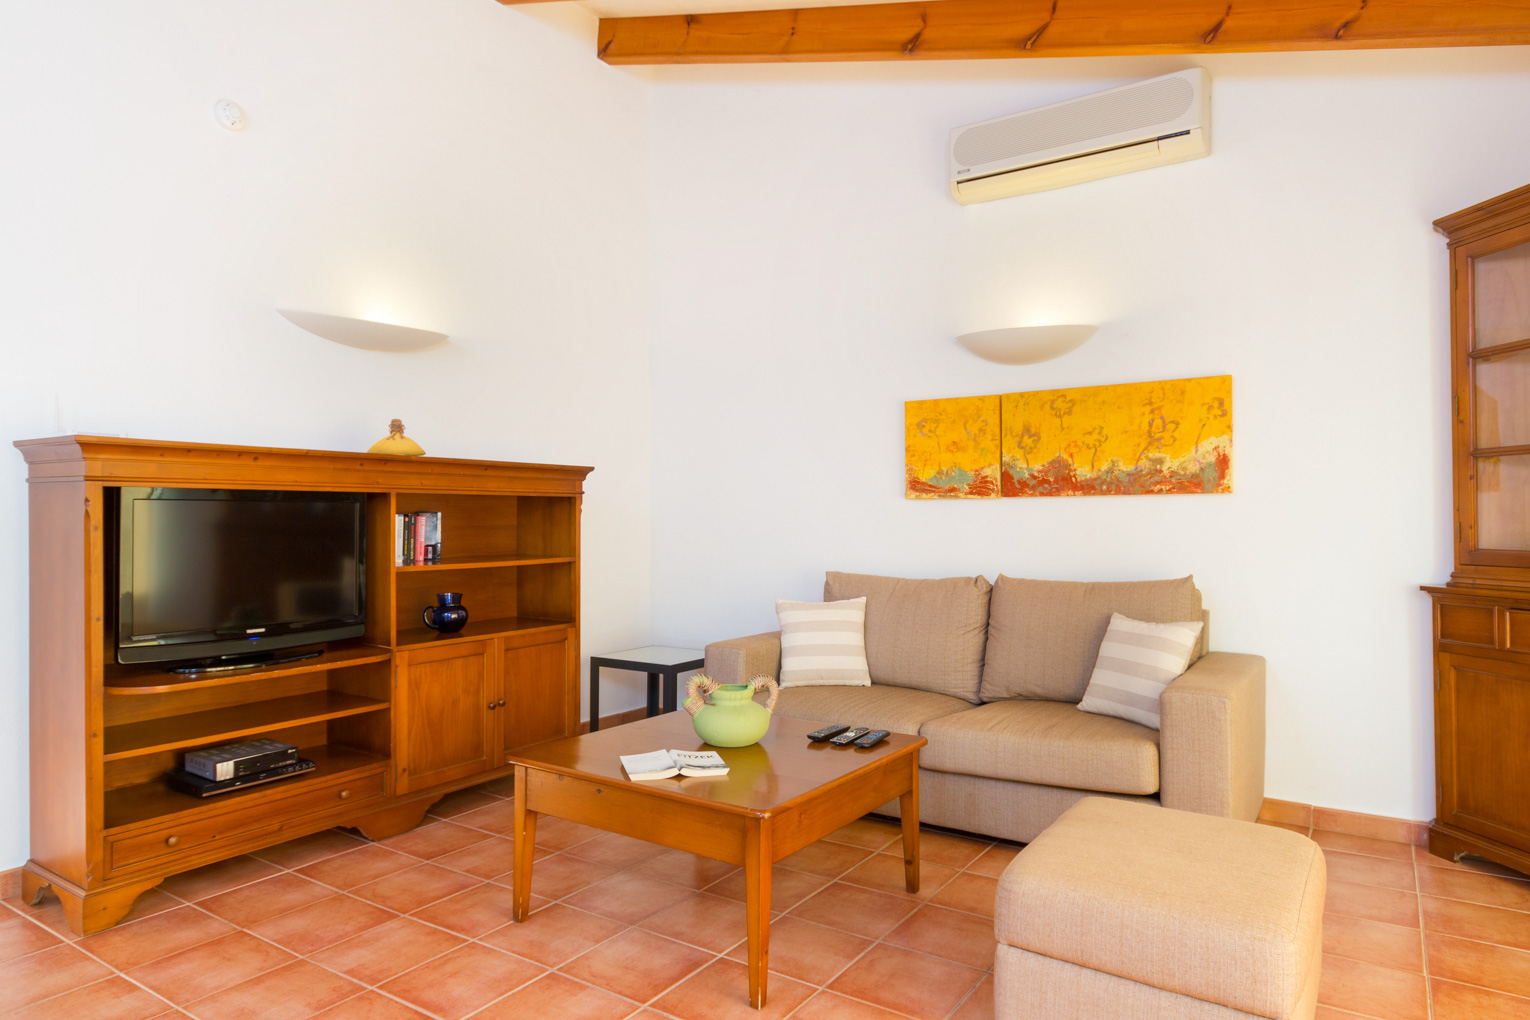 Villas Menorca Sur (2 Bedrooms) Picture 11